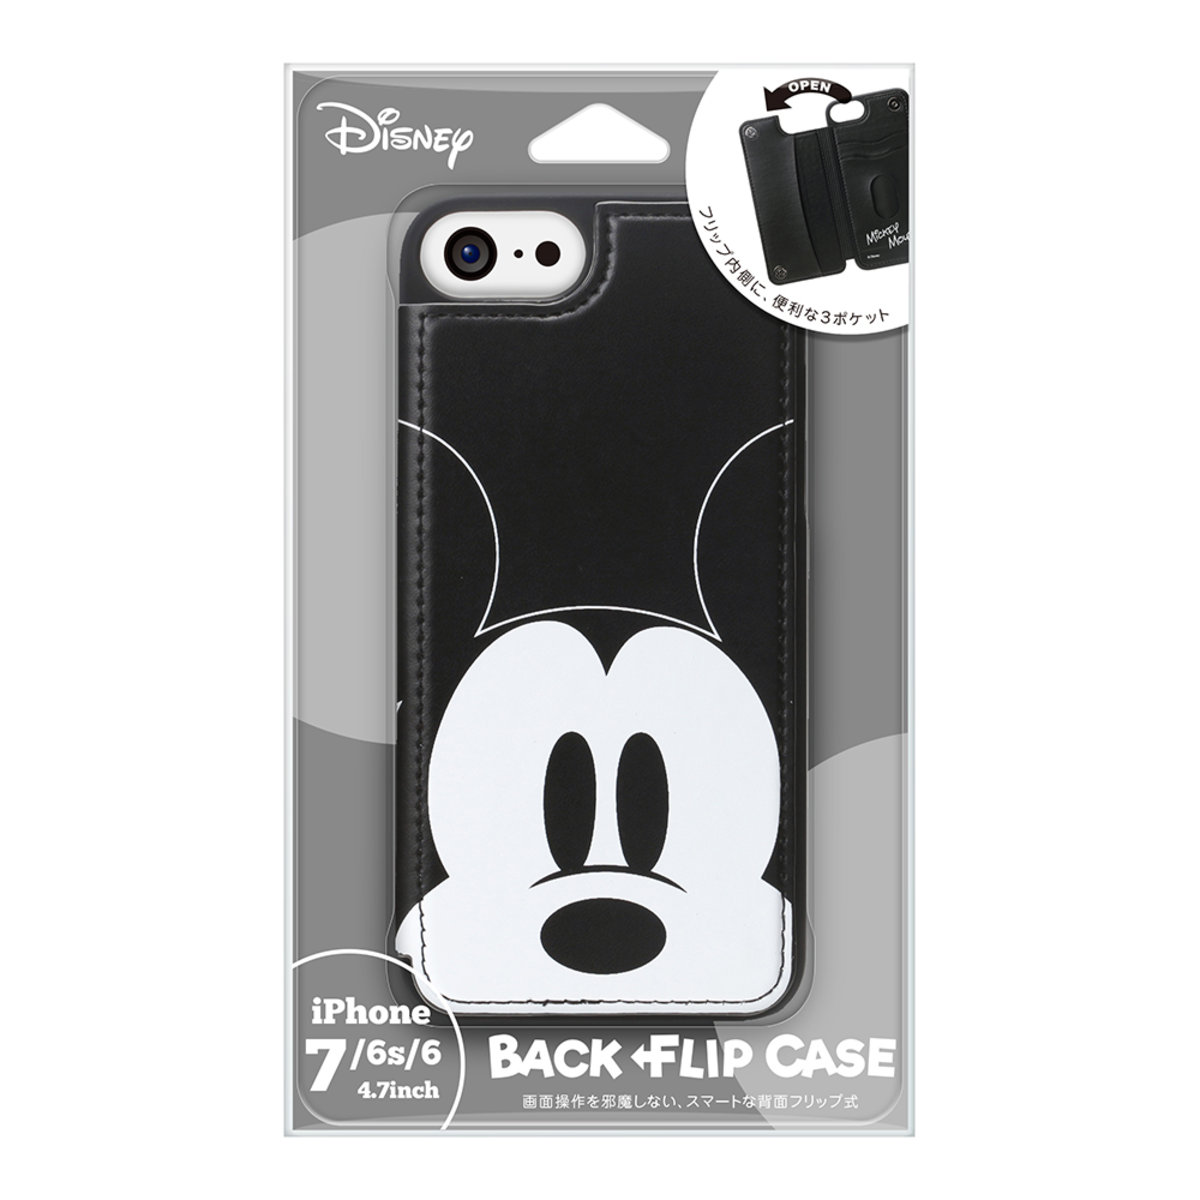 disney flip phone case iphone 7